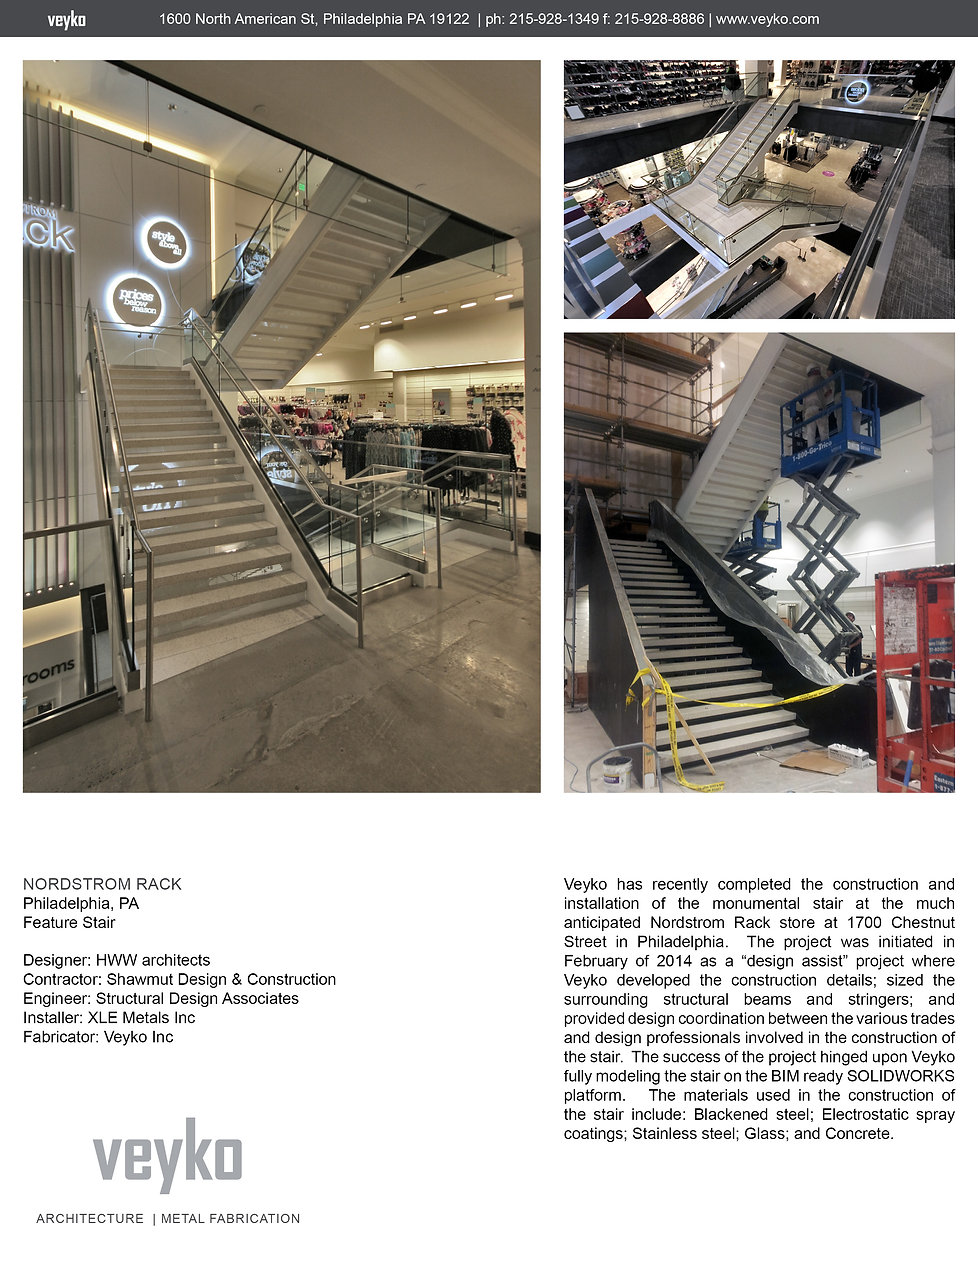 Issue 12 Nordstrum Rack p1.jpg